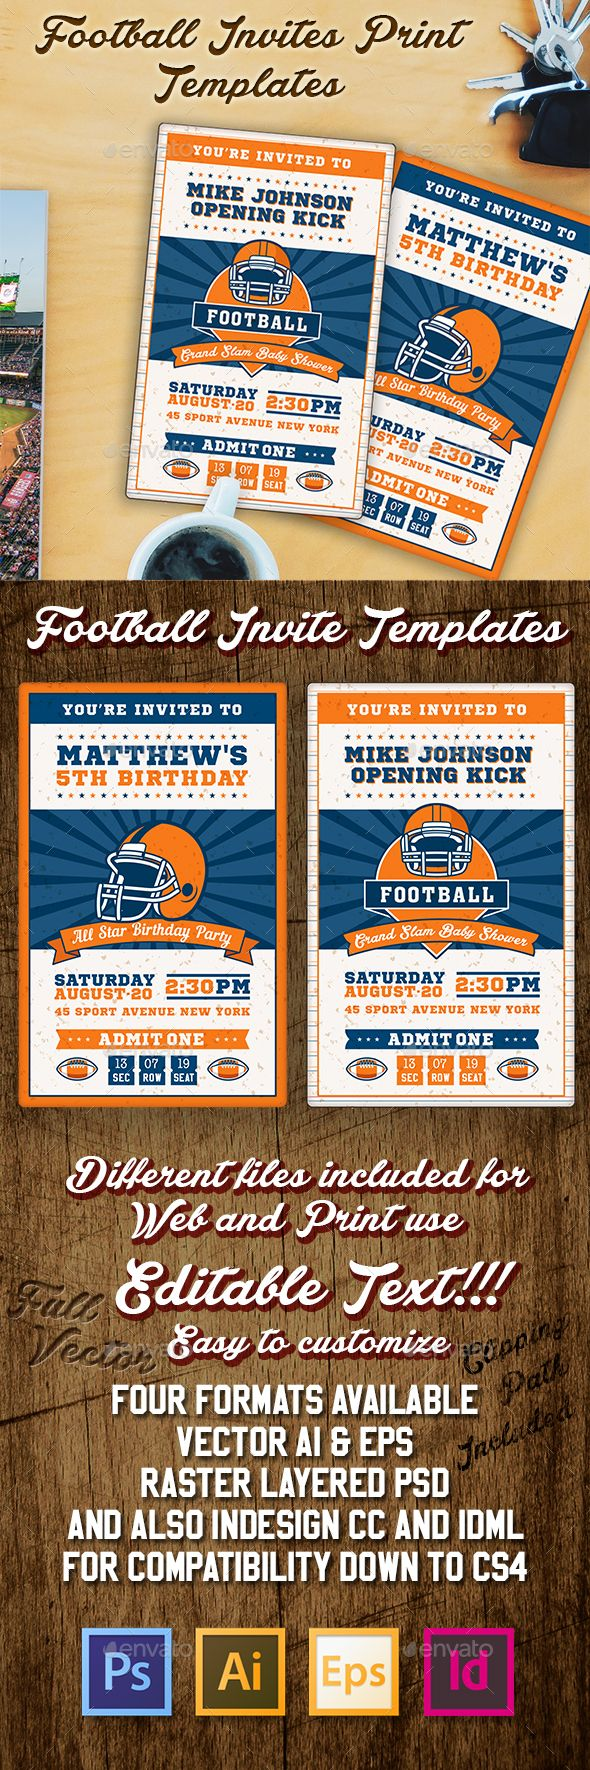 120 best Ticket Template images on Pinterest | Event tickets, Ticket ...